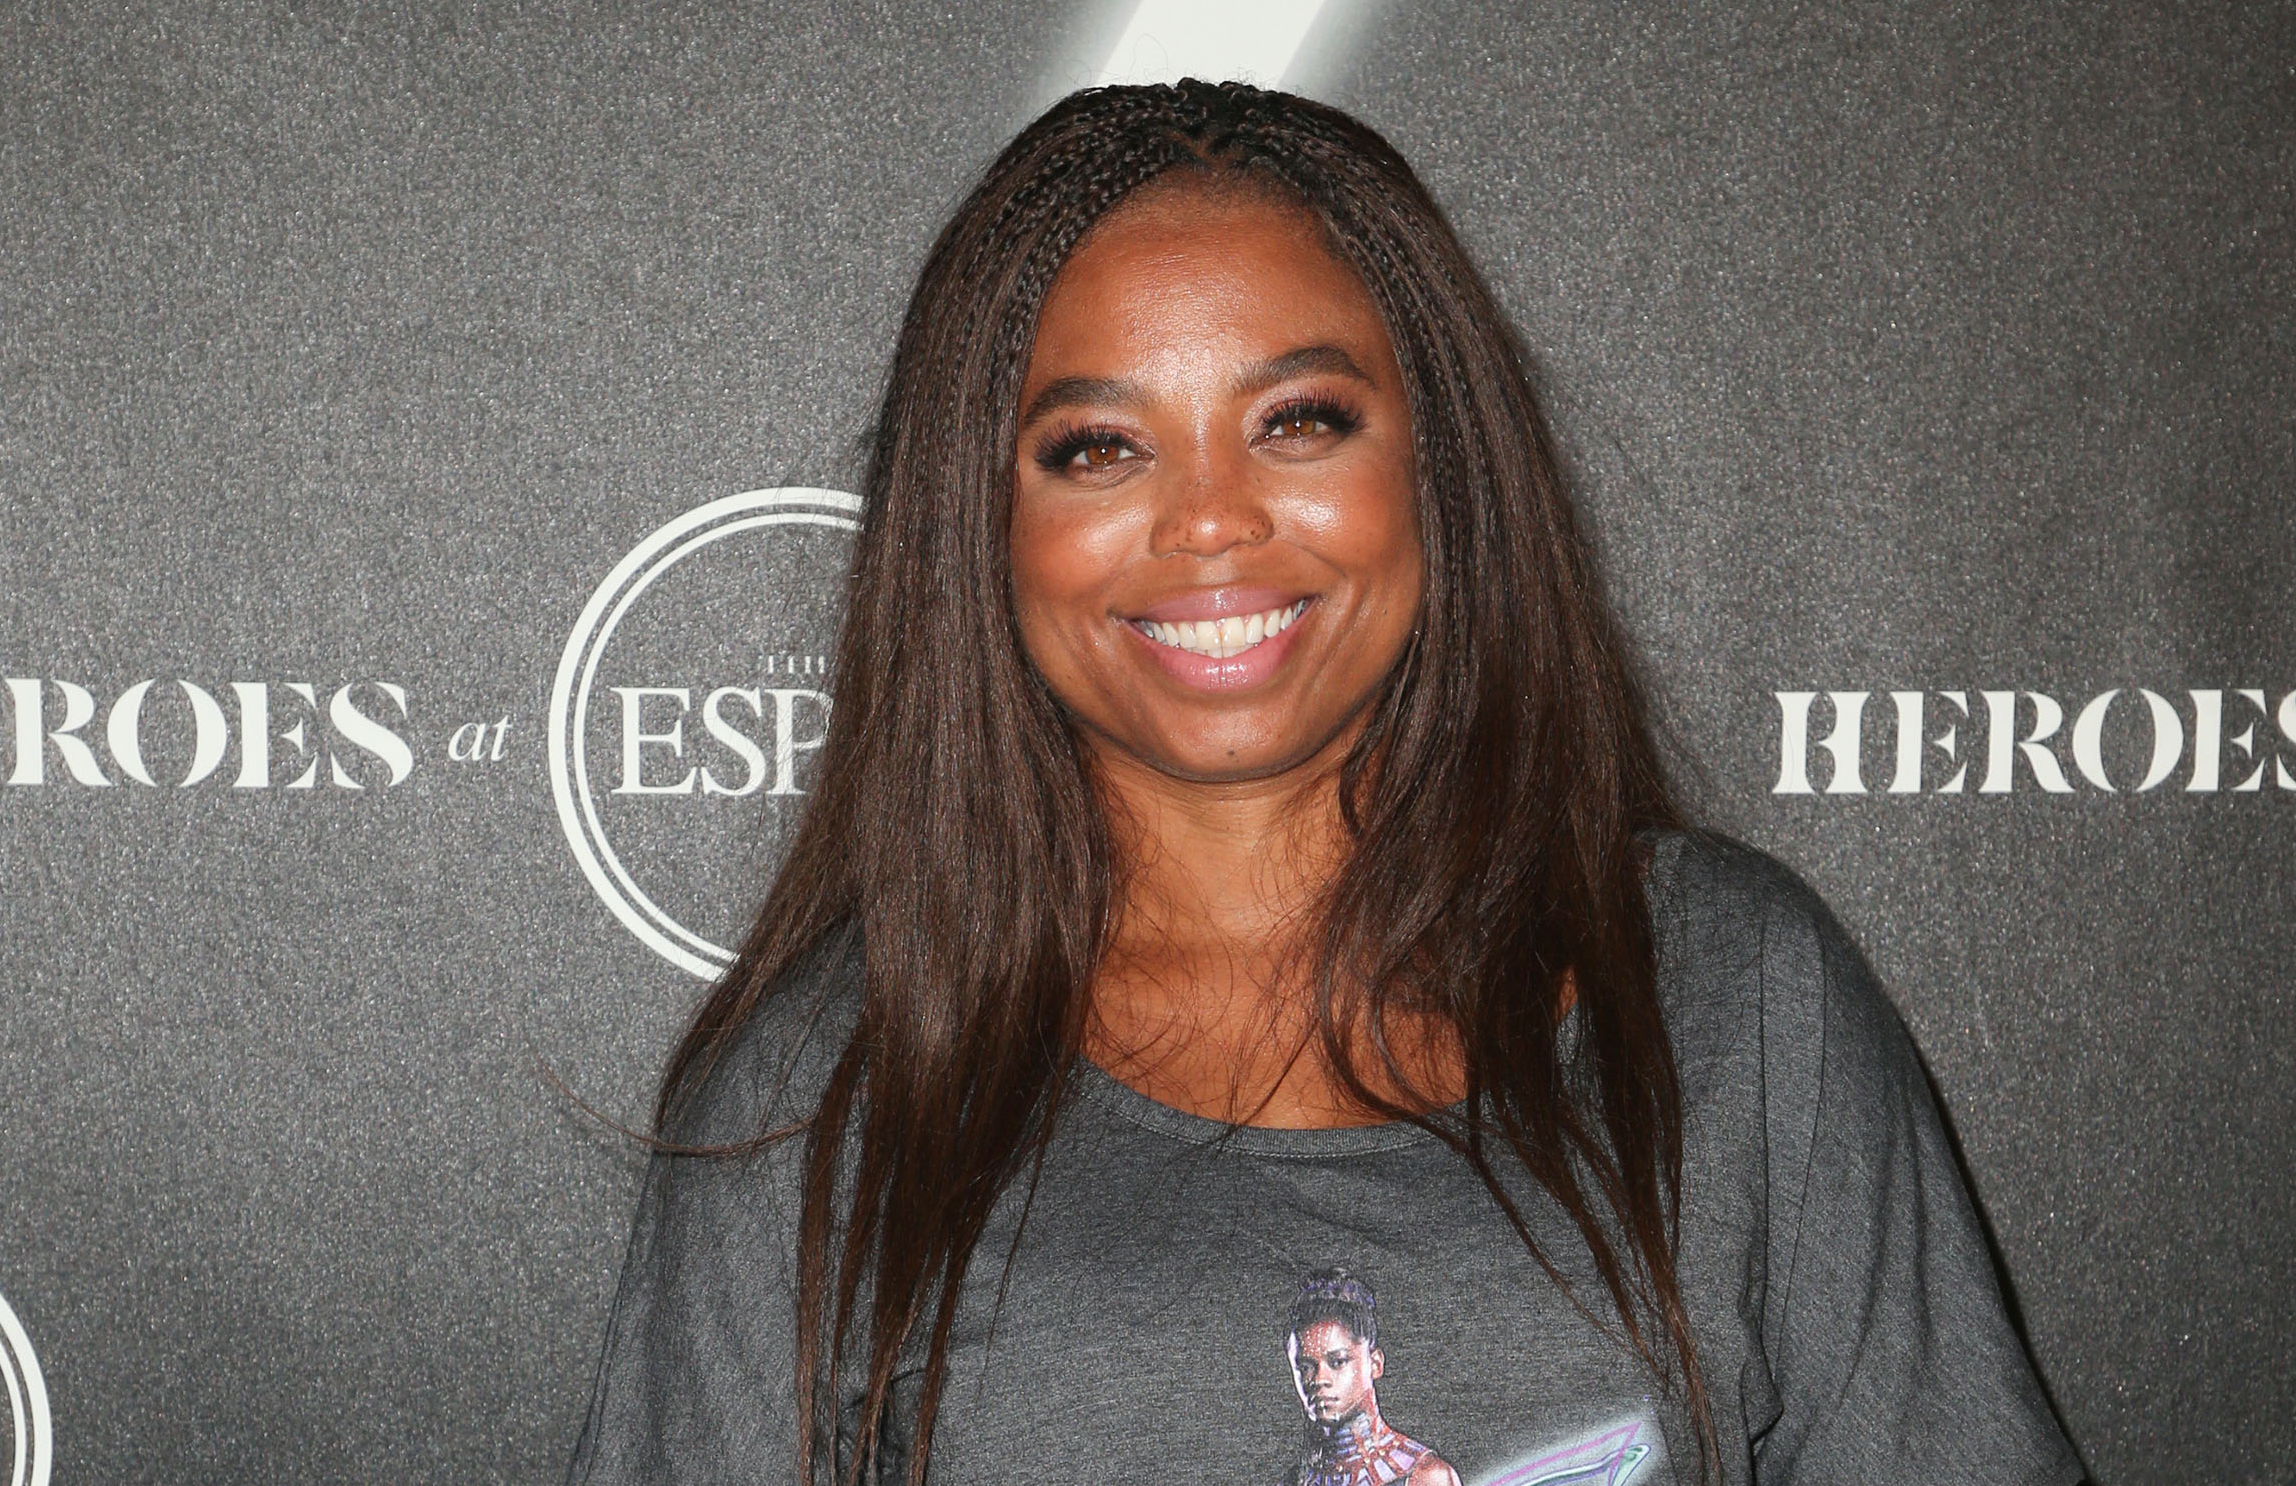 Jemele Hill Is 'Very Excited' To Launch Podcast